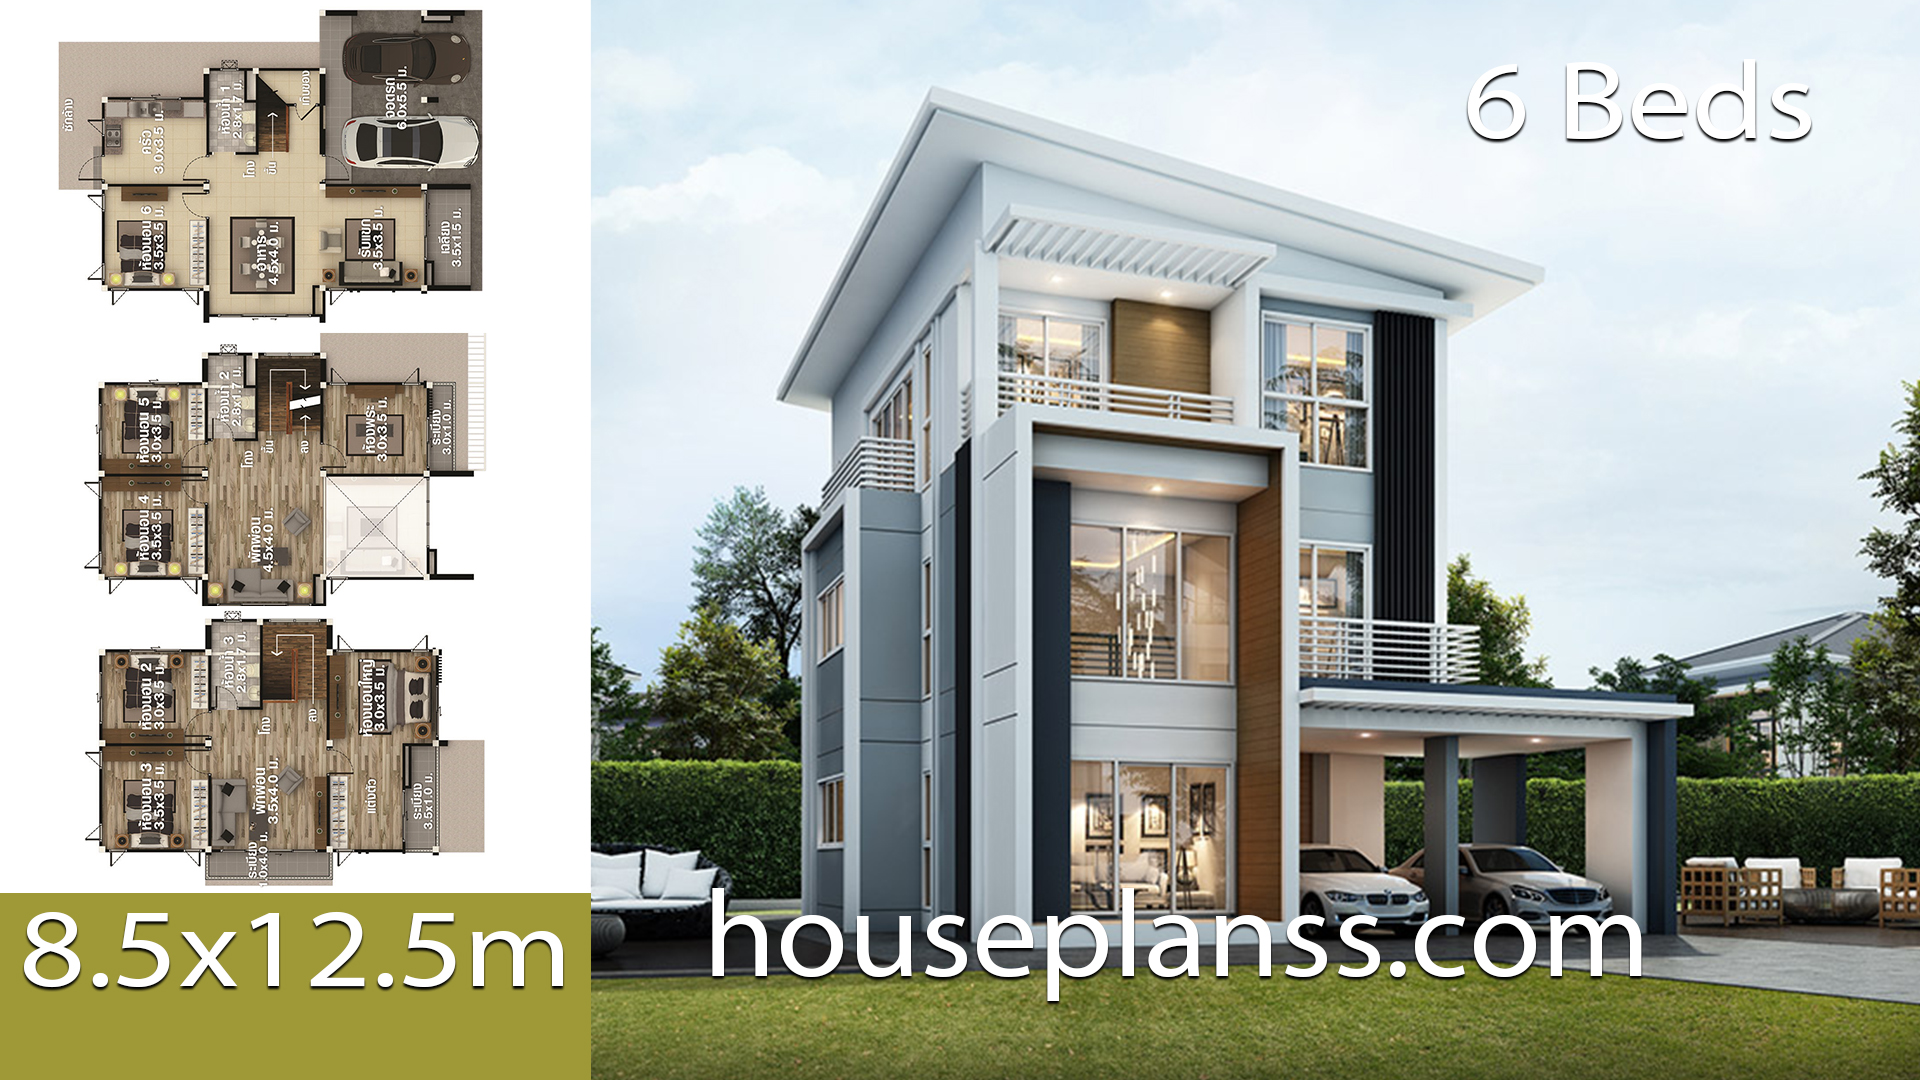 House plans design idea 8.5×12.5 with 6 bedrooms